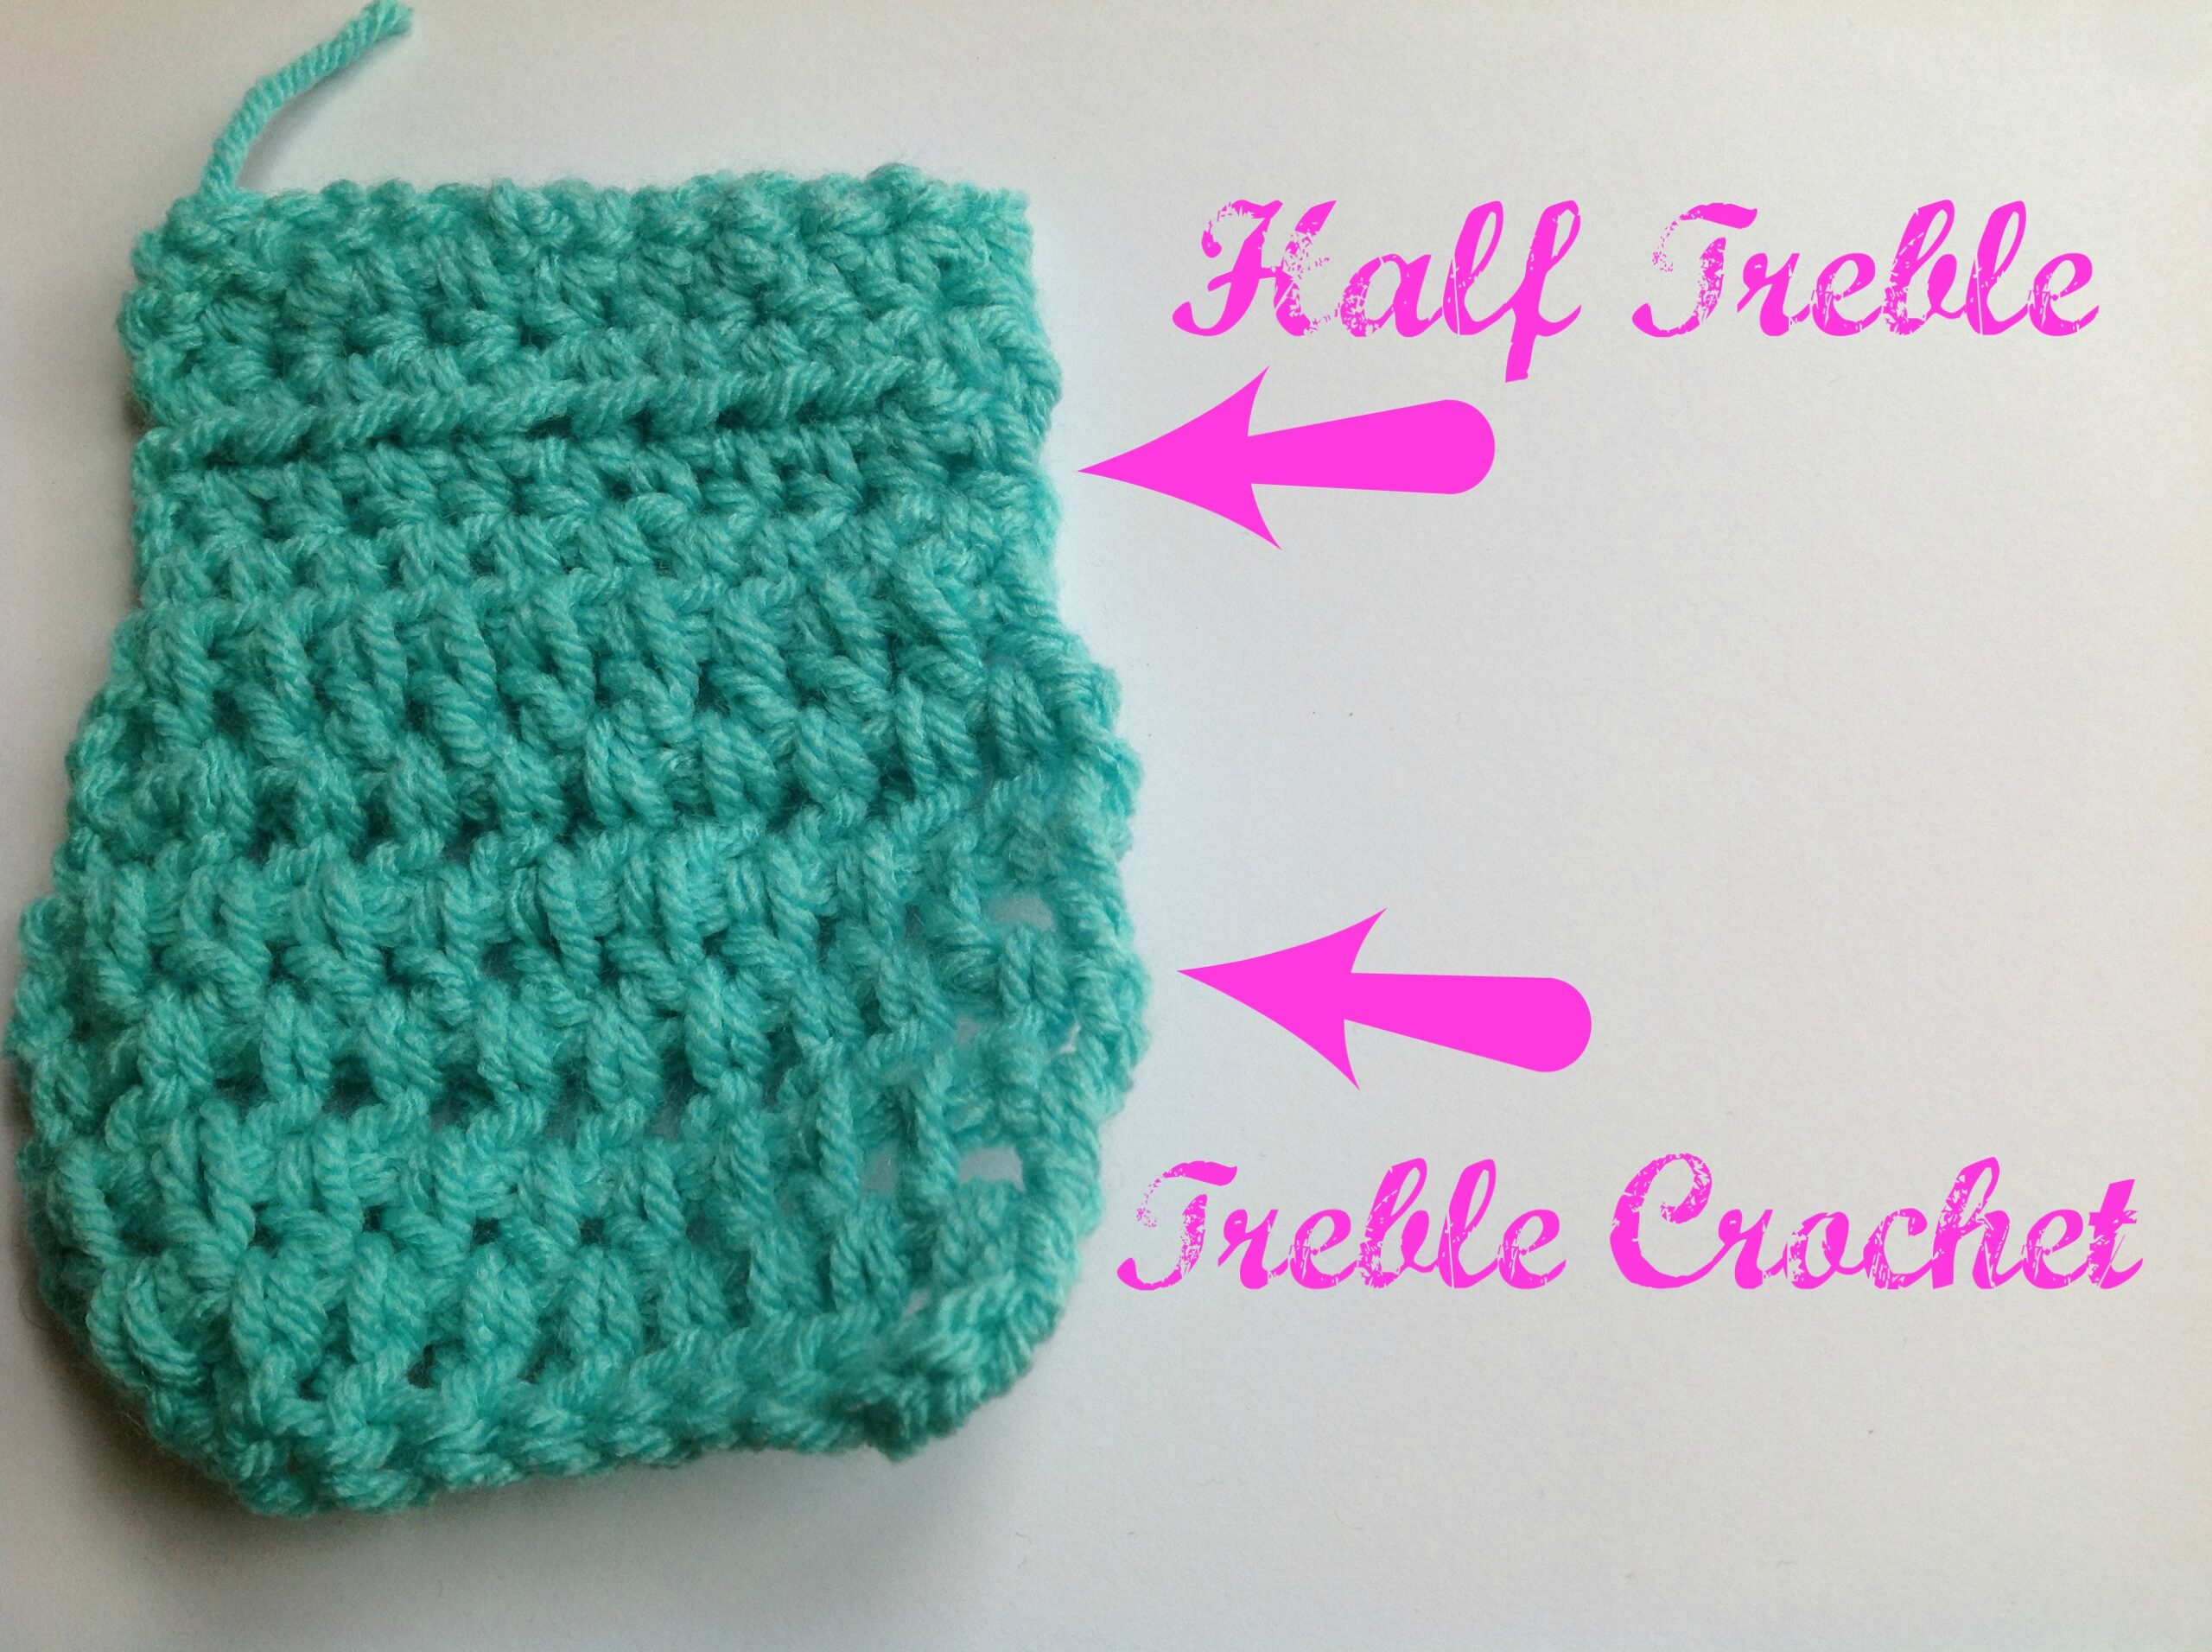 Treble Crochet Stitch Treble And Treble Crochet